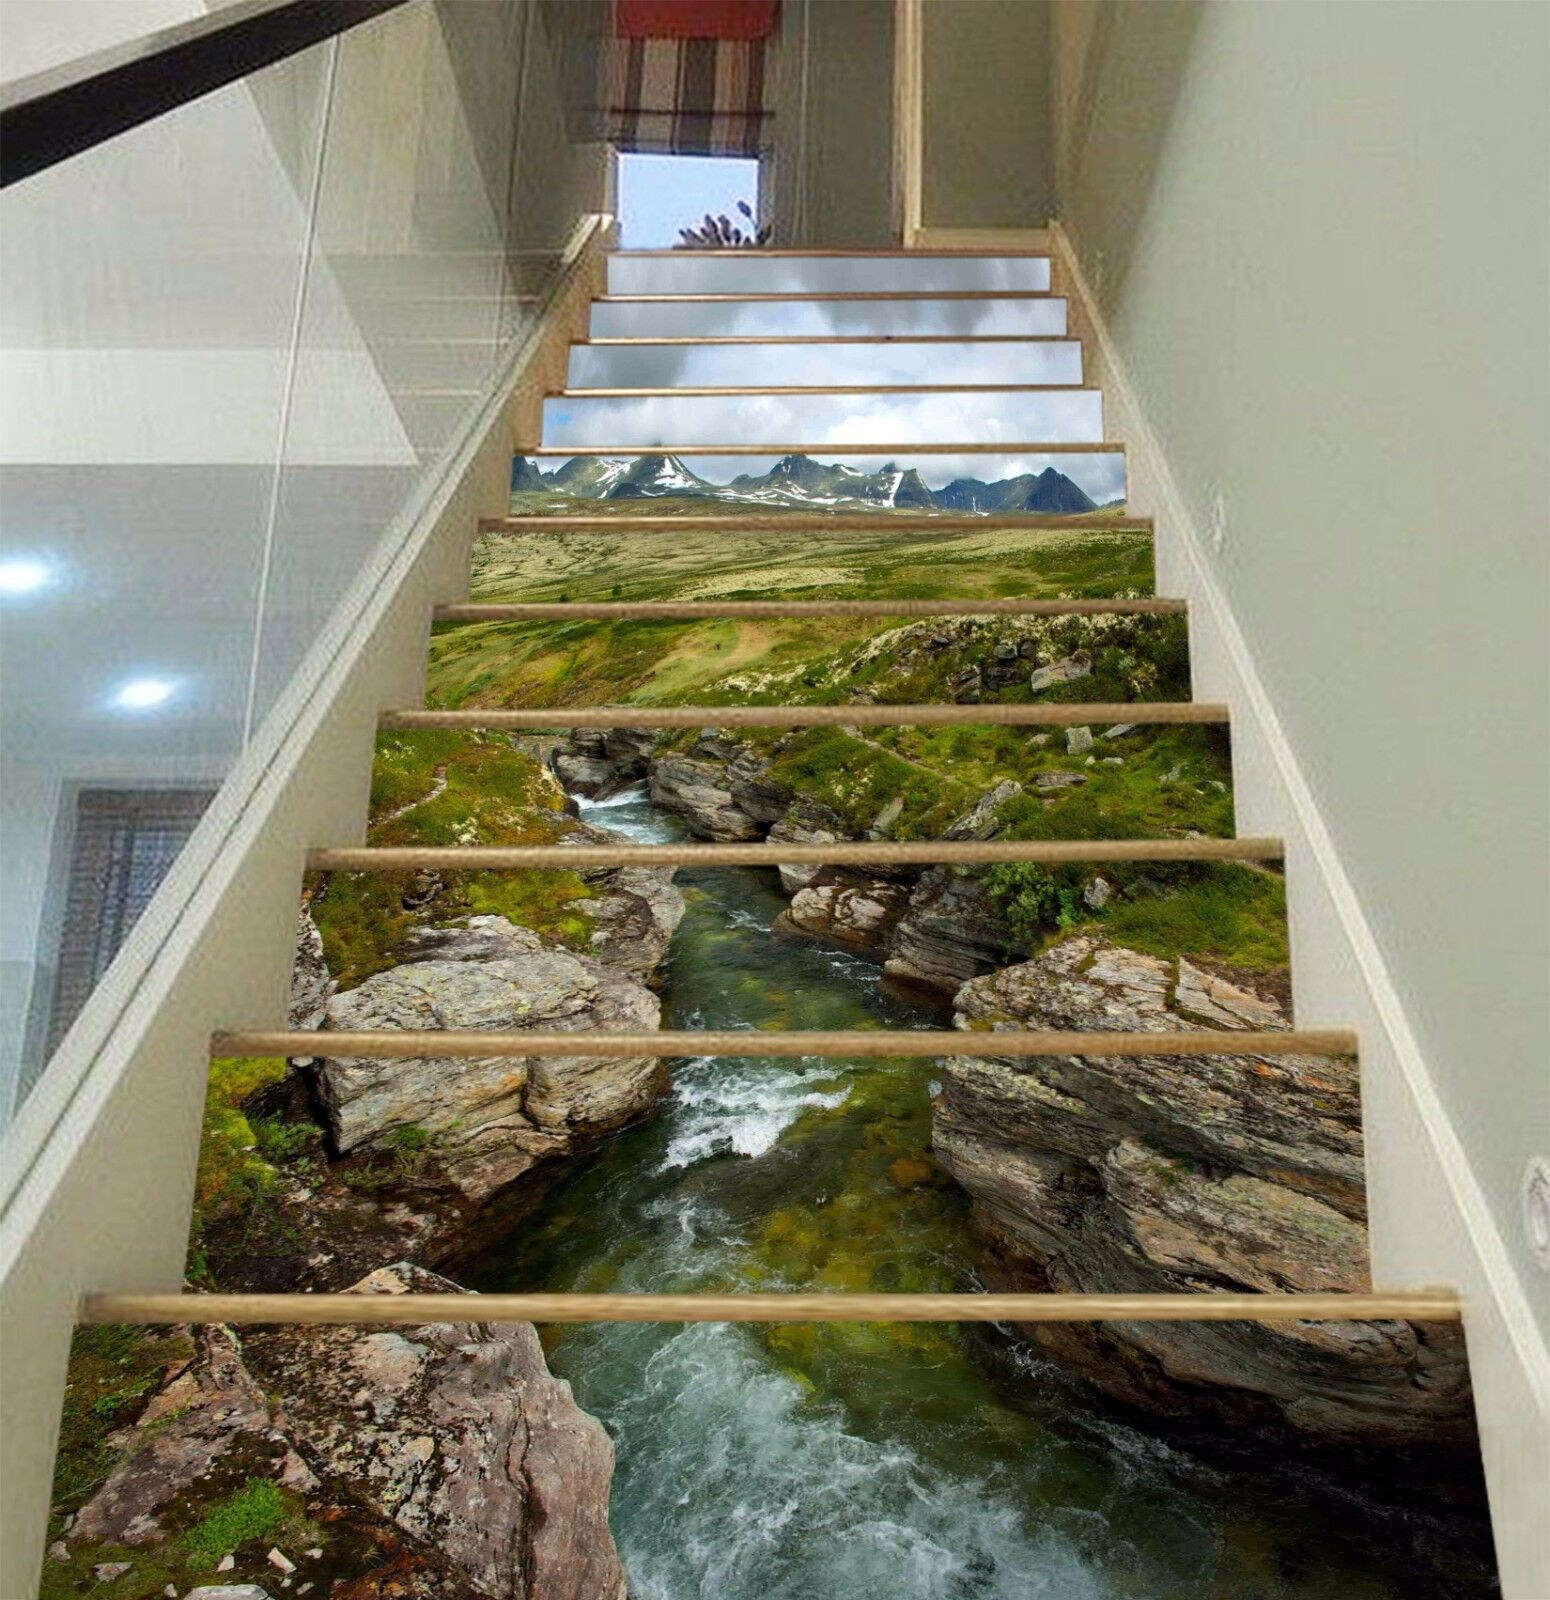 3D Snowy Nature 924 Stair Risers Decoration Photo Mural Vinyl Decal Wallpaper AU